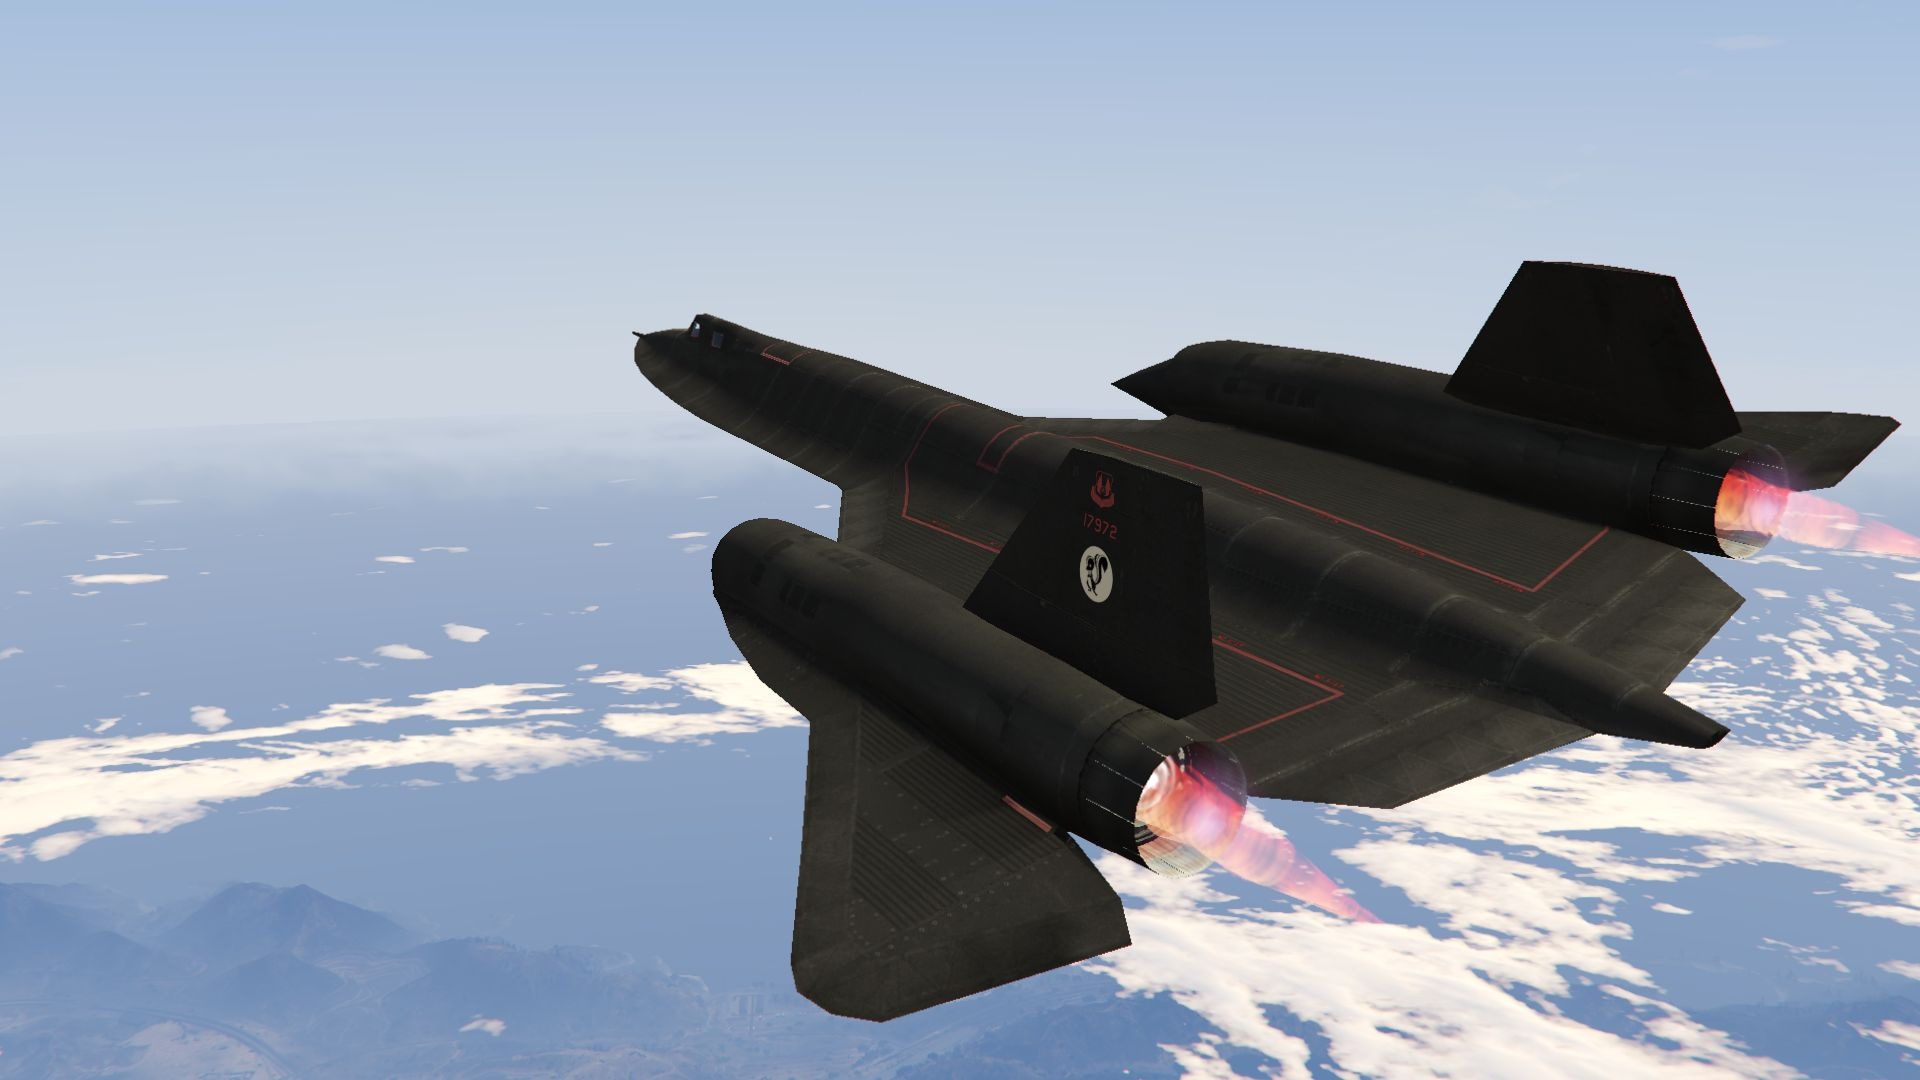 Fastest Jet In The World >> Sr 71a Blackbird Fastest Jet In The World Gta5 Mods Com